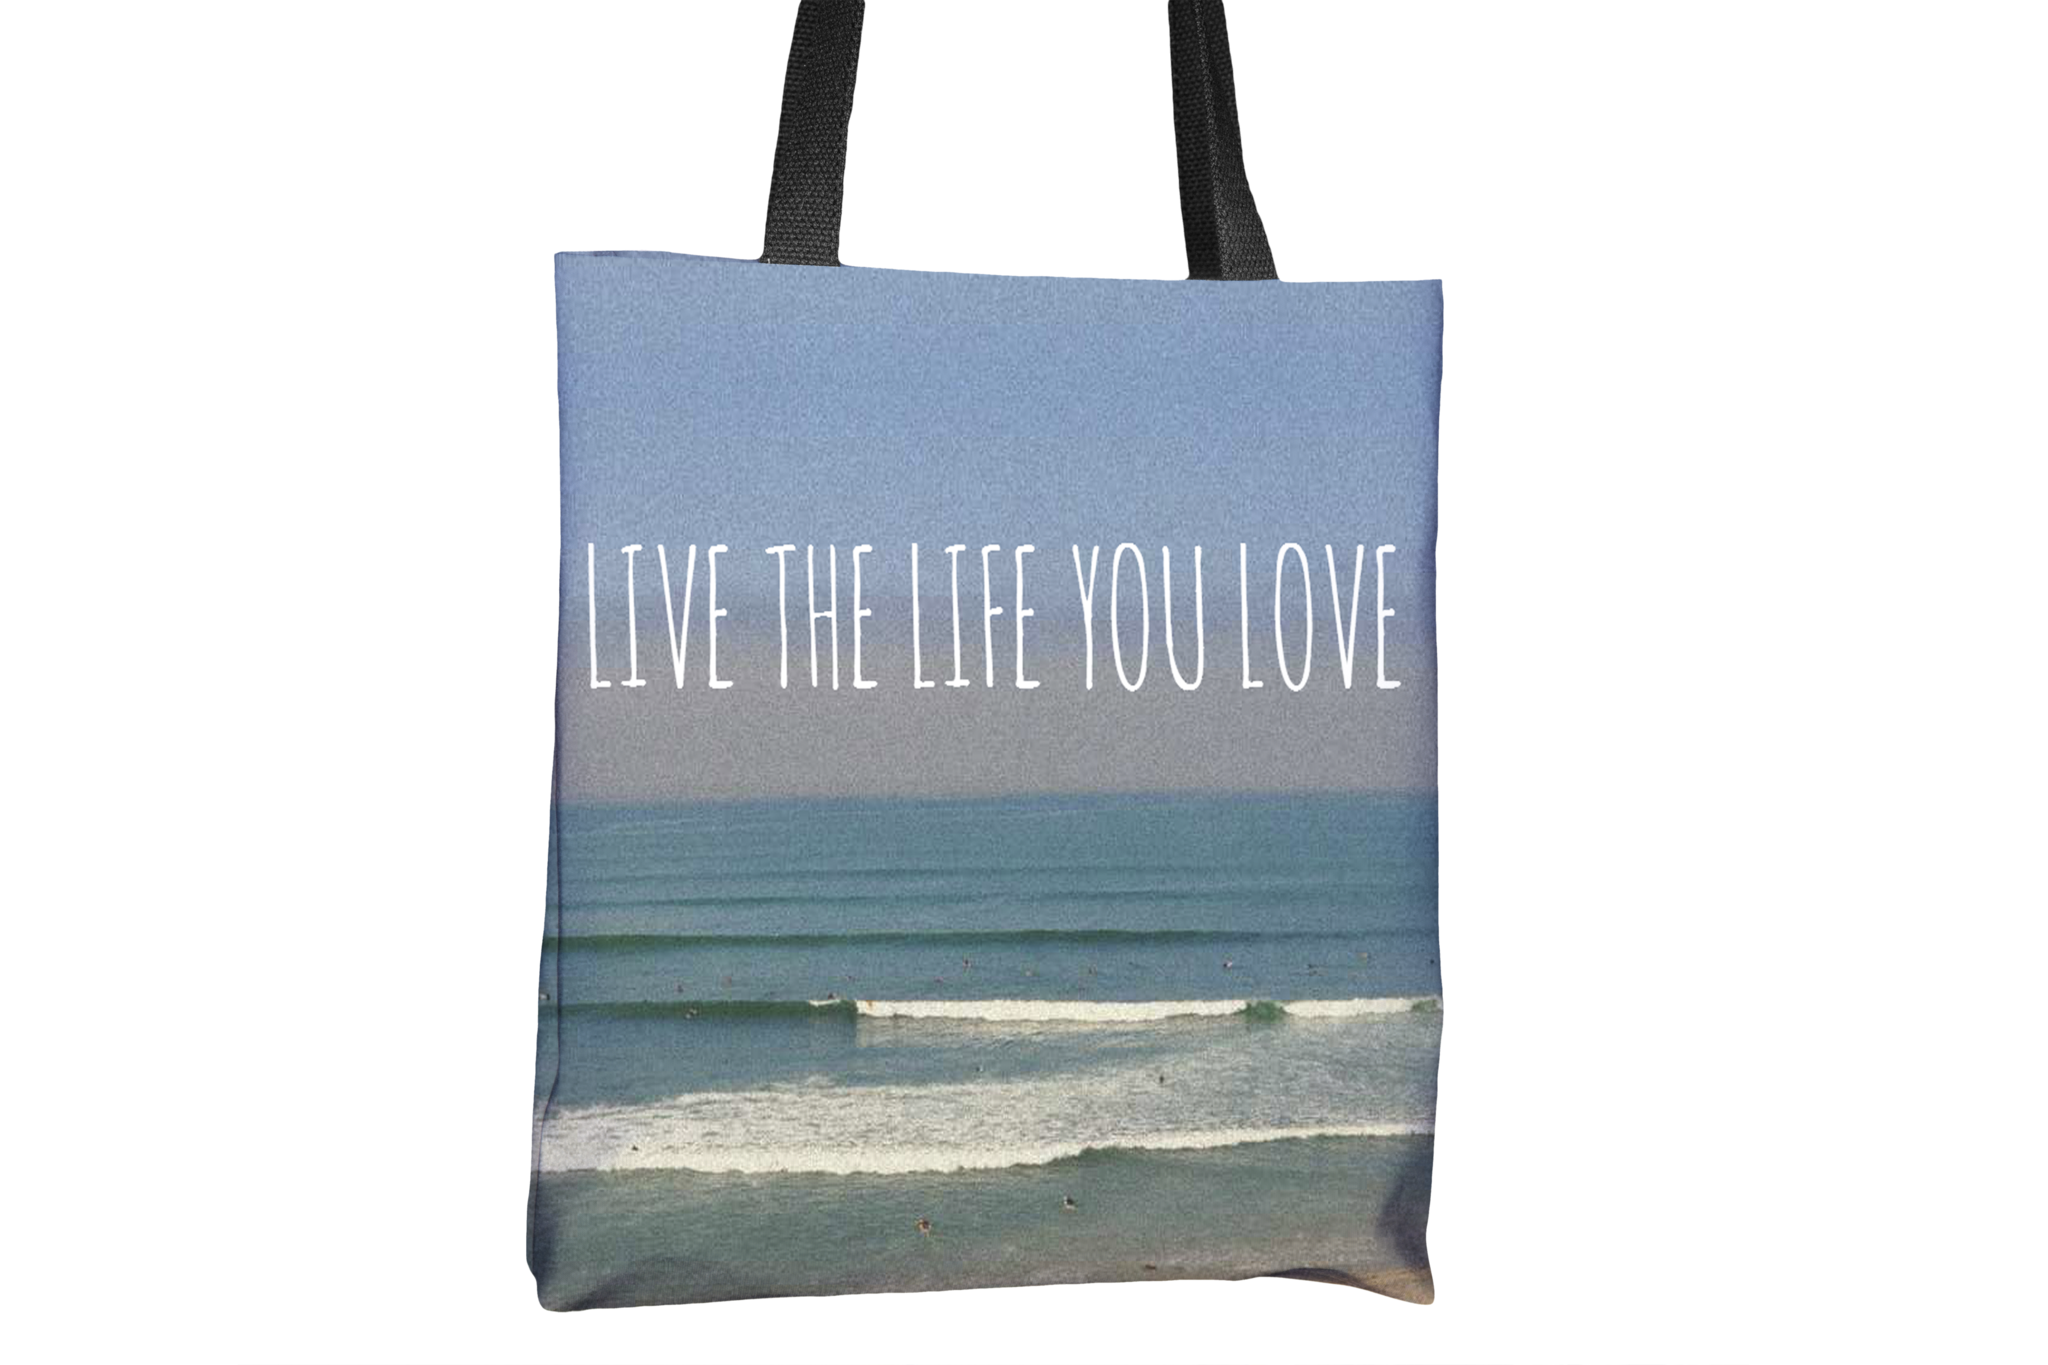 Live The Life You Love San Onofre California All-Over-Print Tote Bag - Cal31.com